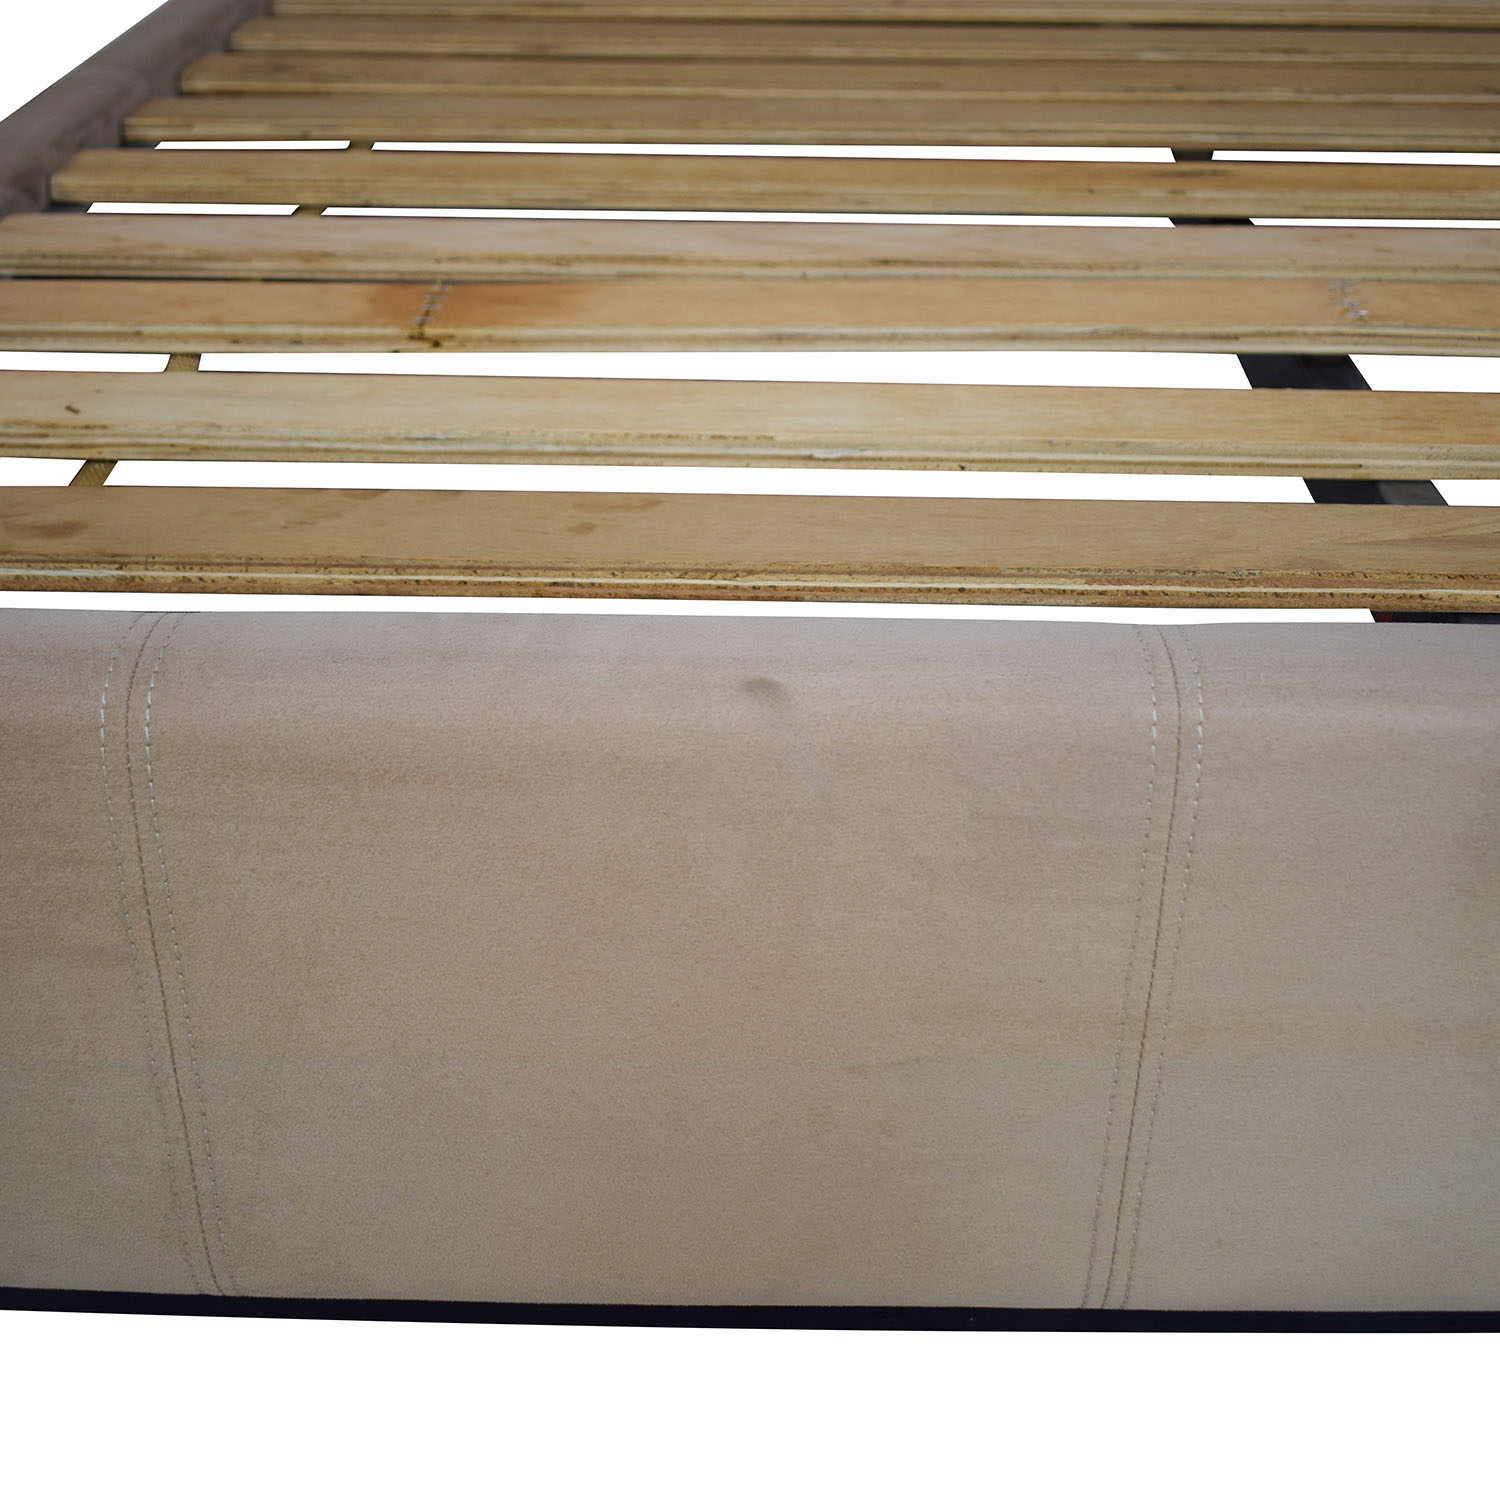 Cellini Cellini Full Bed Frame second hand